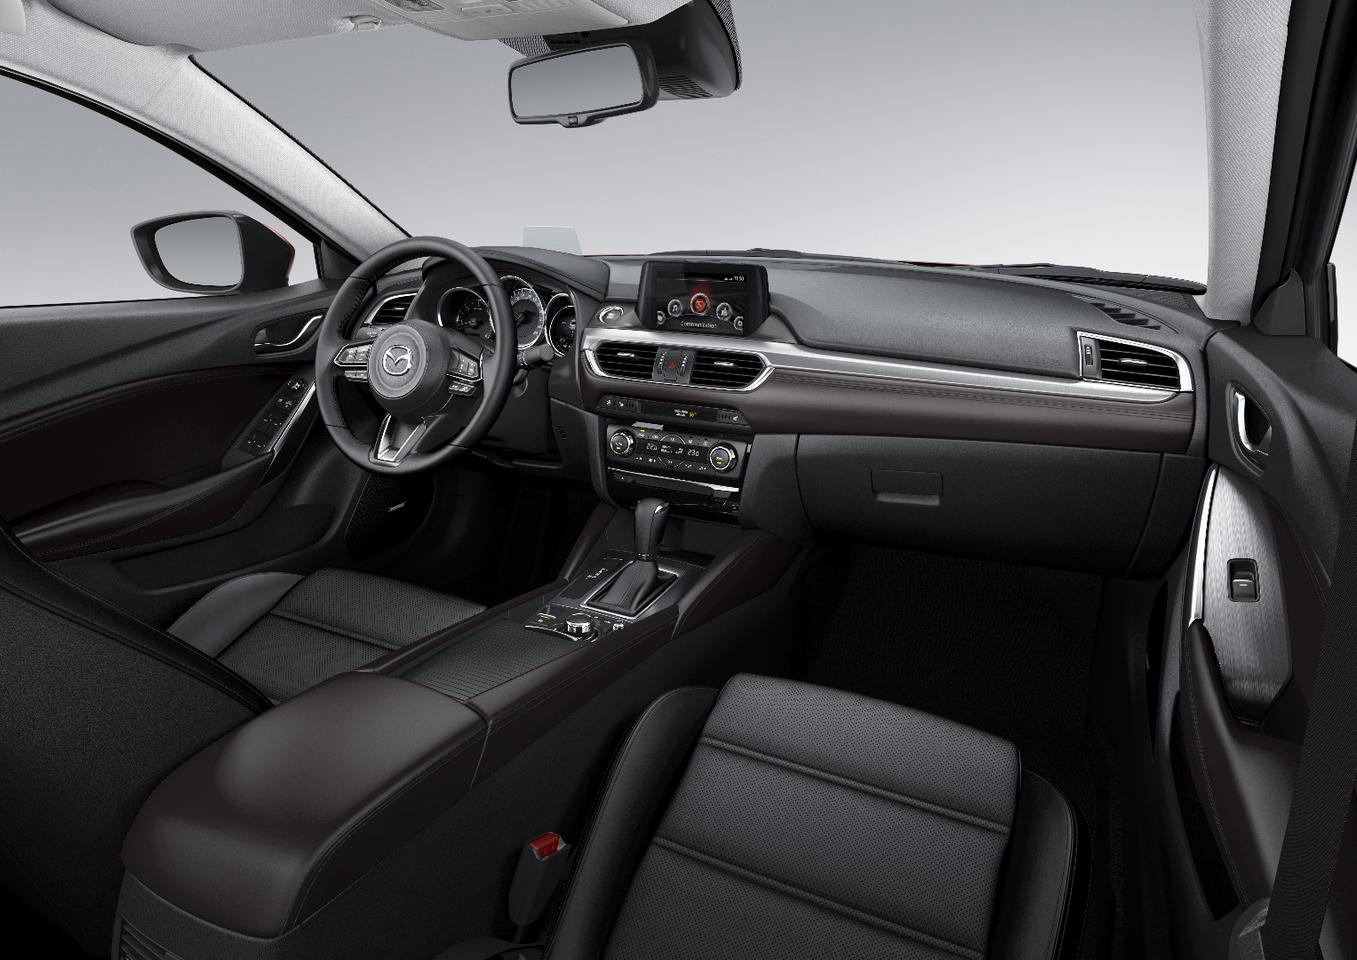 It should be refined and smooth in here thanks to Mazda's refreshments